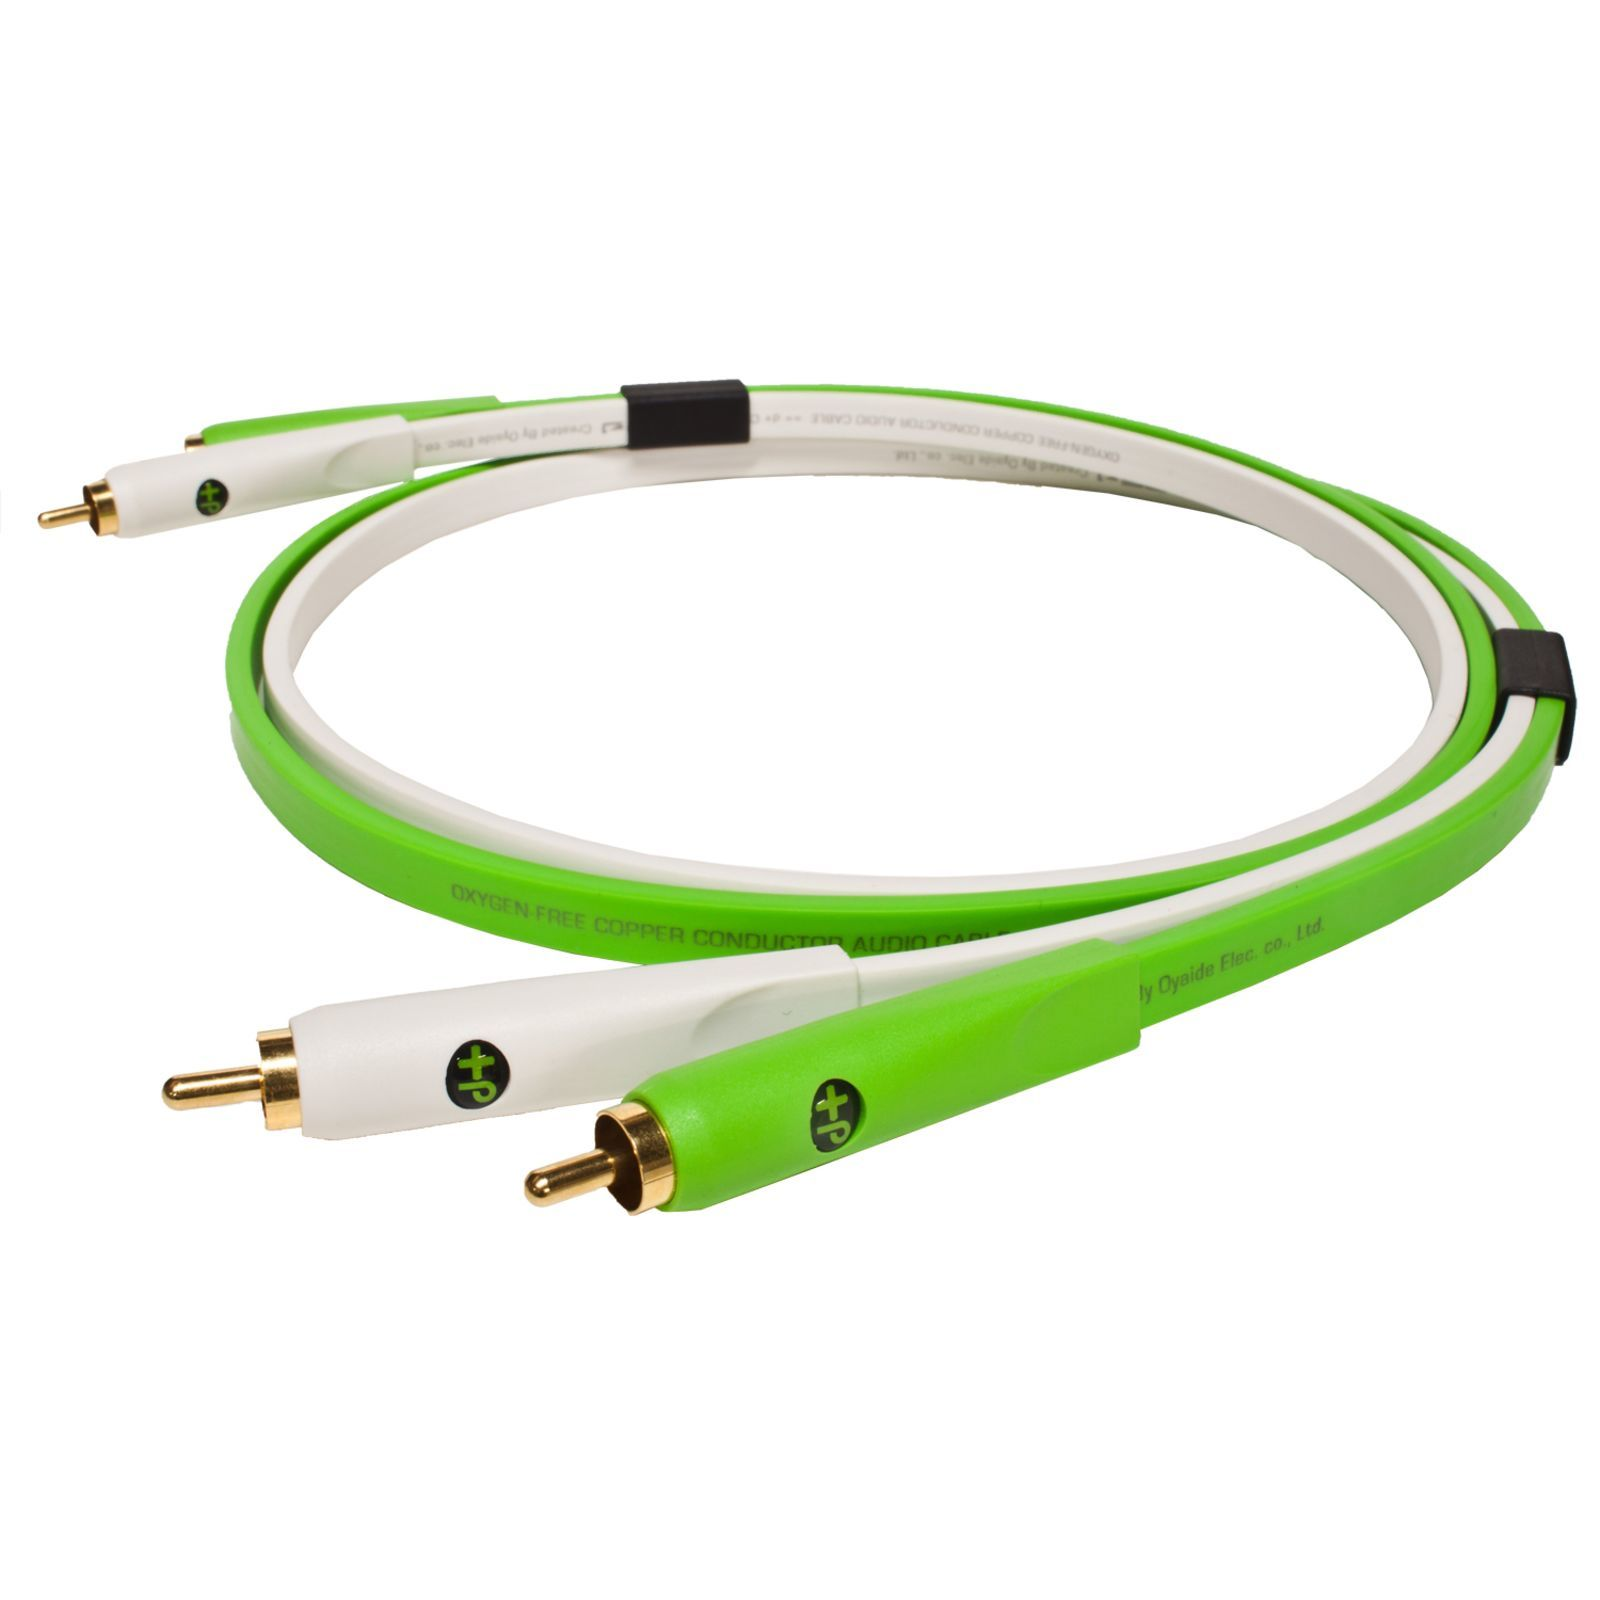 NEO by Oyaide d+ Stereo Cable RCA, Clase B largo 2,0m Imagen del producto